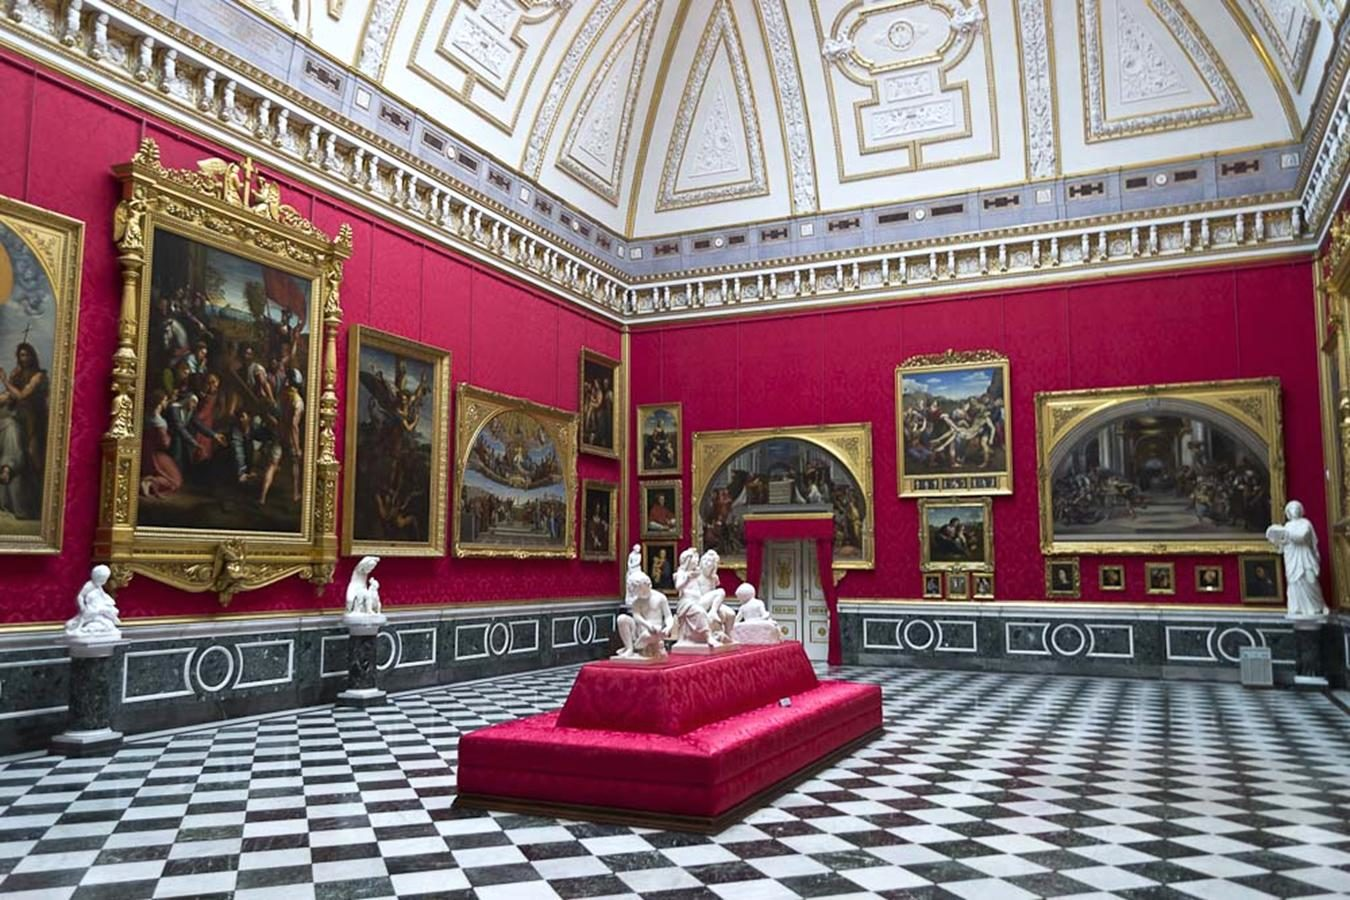 Wall Interior Decoration Free Picture: Architecture, Luxury, Museum, Interior, Art